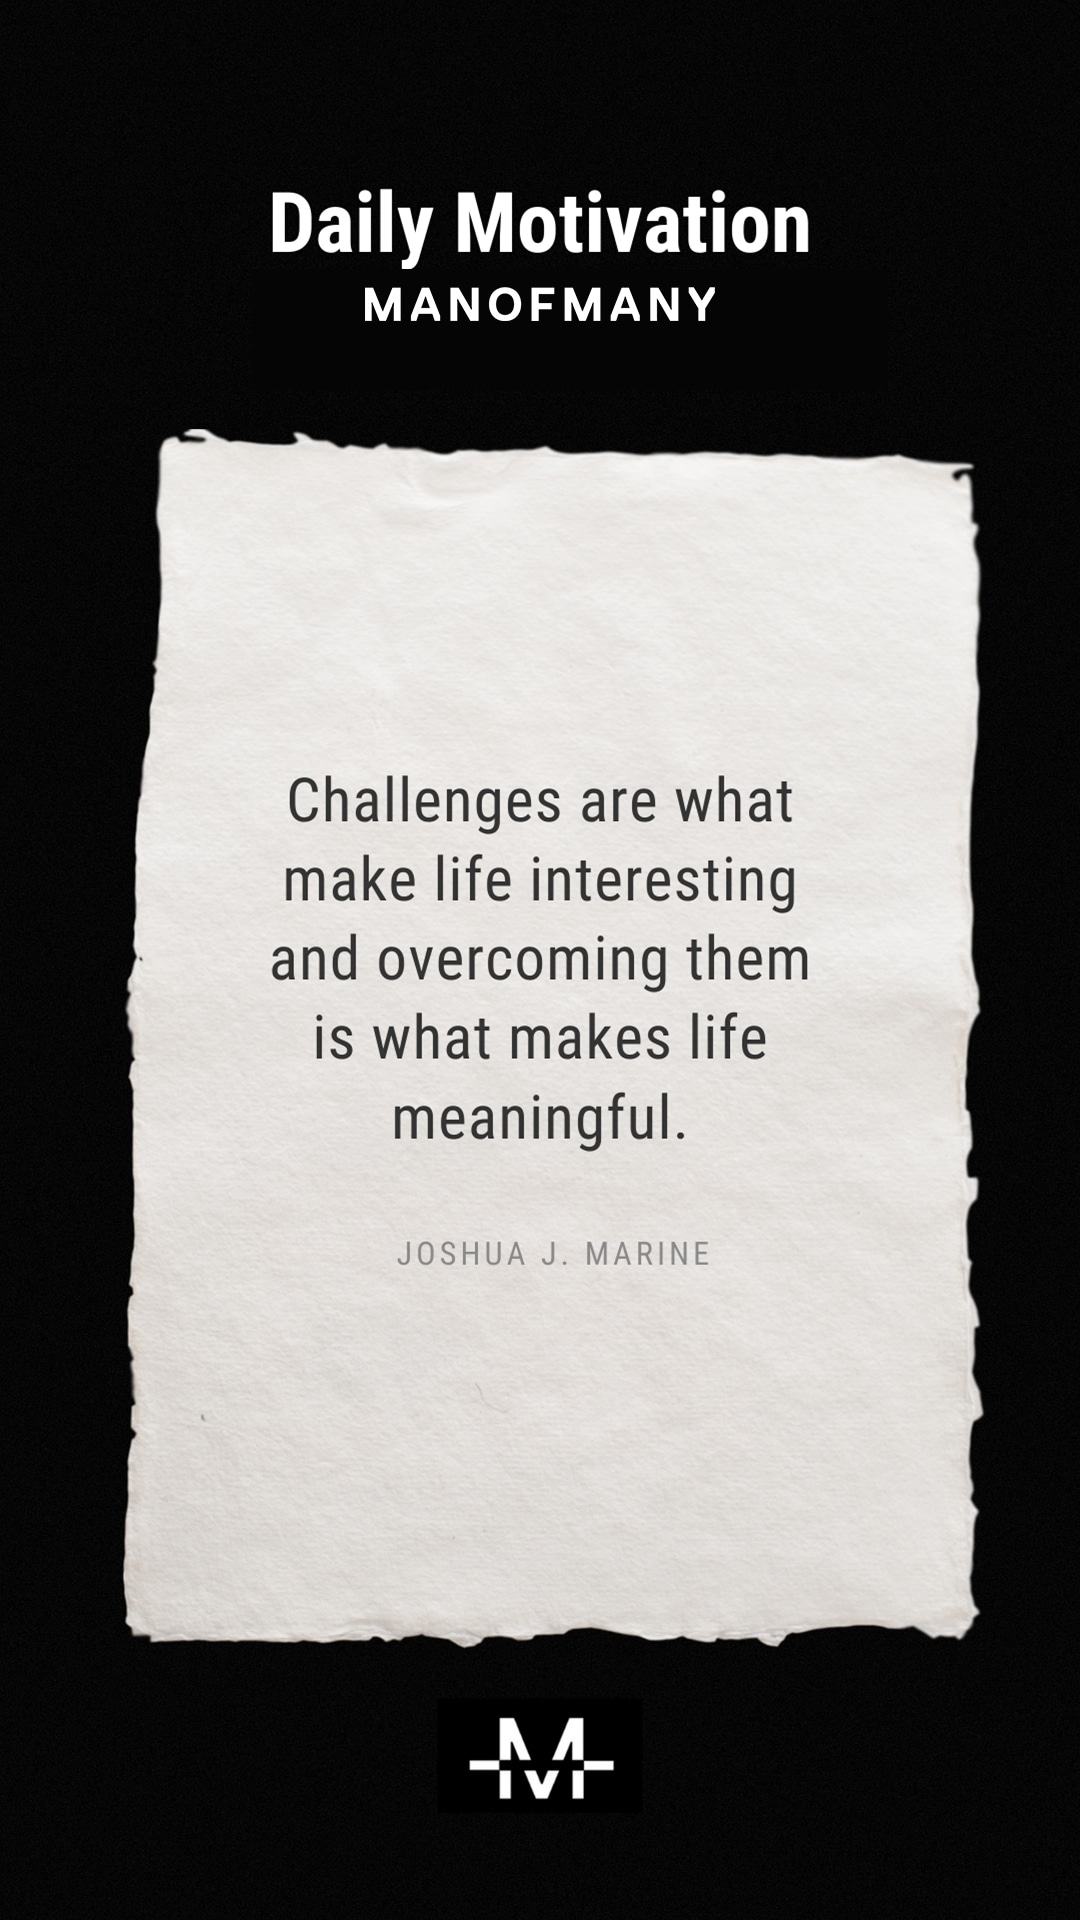 Challenges are what make life interesting and overcoming them is what makes life meaningful. –Joshua J. Marine quote